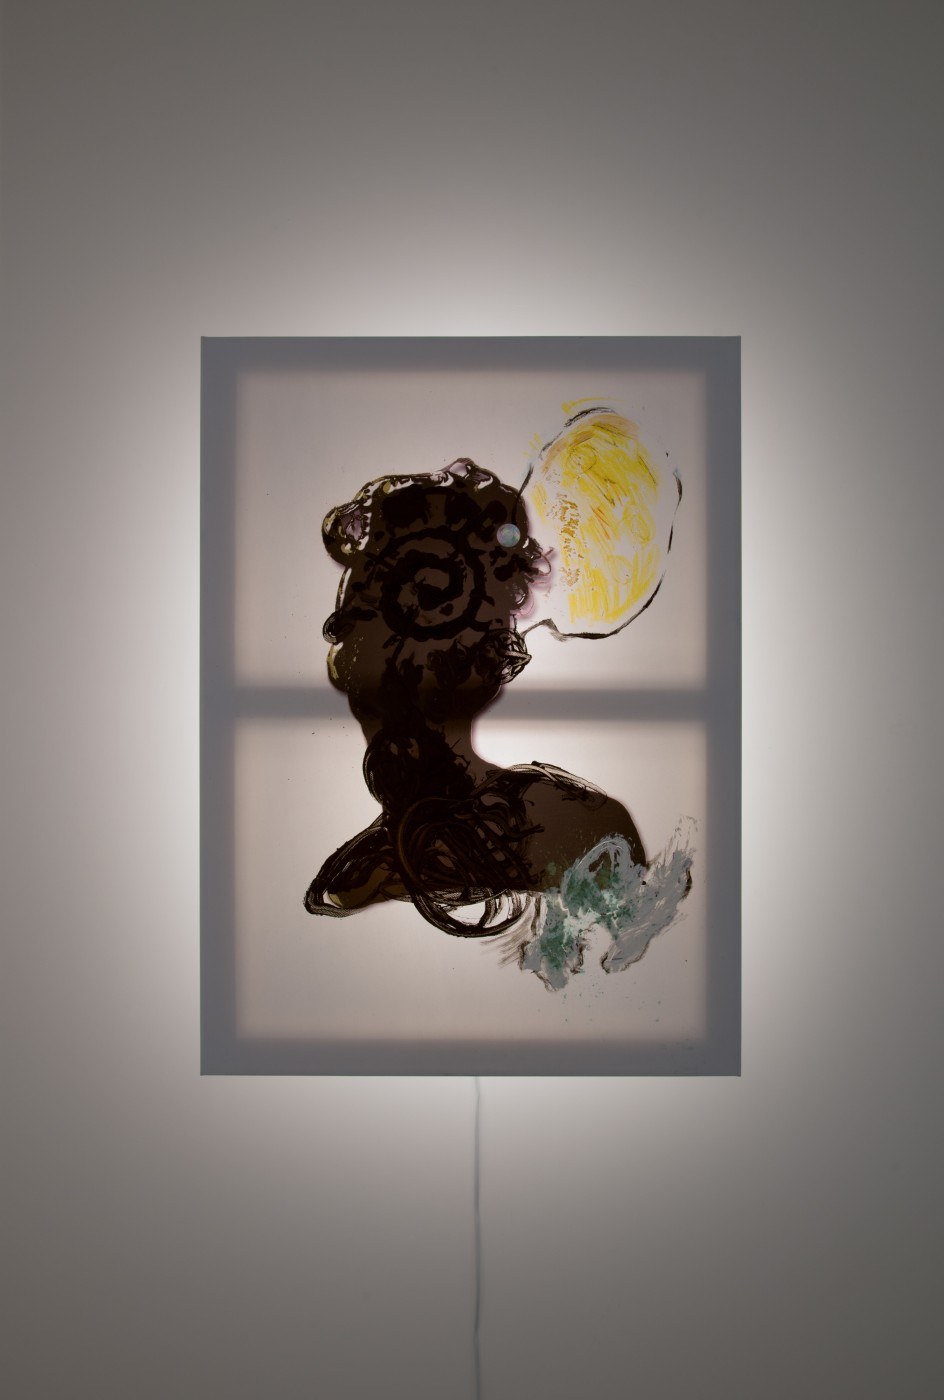 GOLD  Silhouette</I>, 2017 Acrylic, inkjet and pigment on vinyl, plastic, acrylic iridescent gem, wood, steel, LED light 94 x 68,5 x 21 cm / 37 x 26.9 x 8.2 in  JOHN RUSSELL